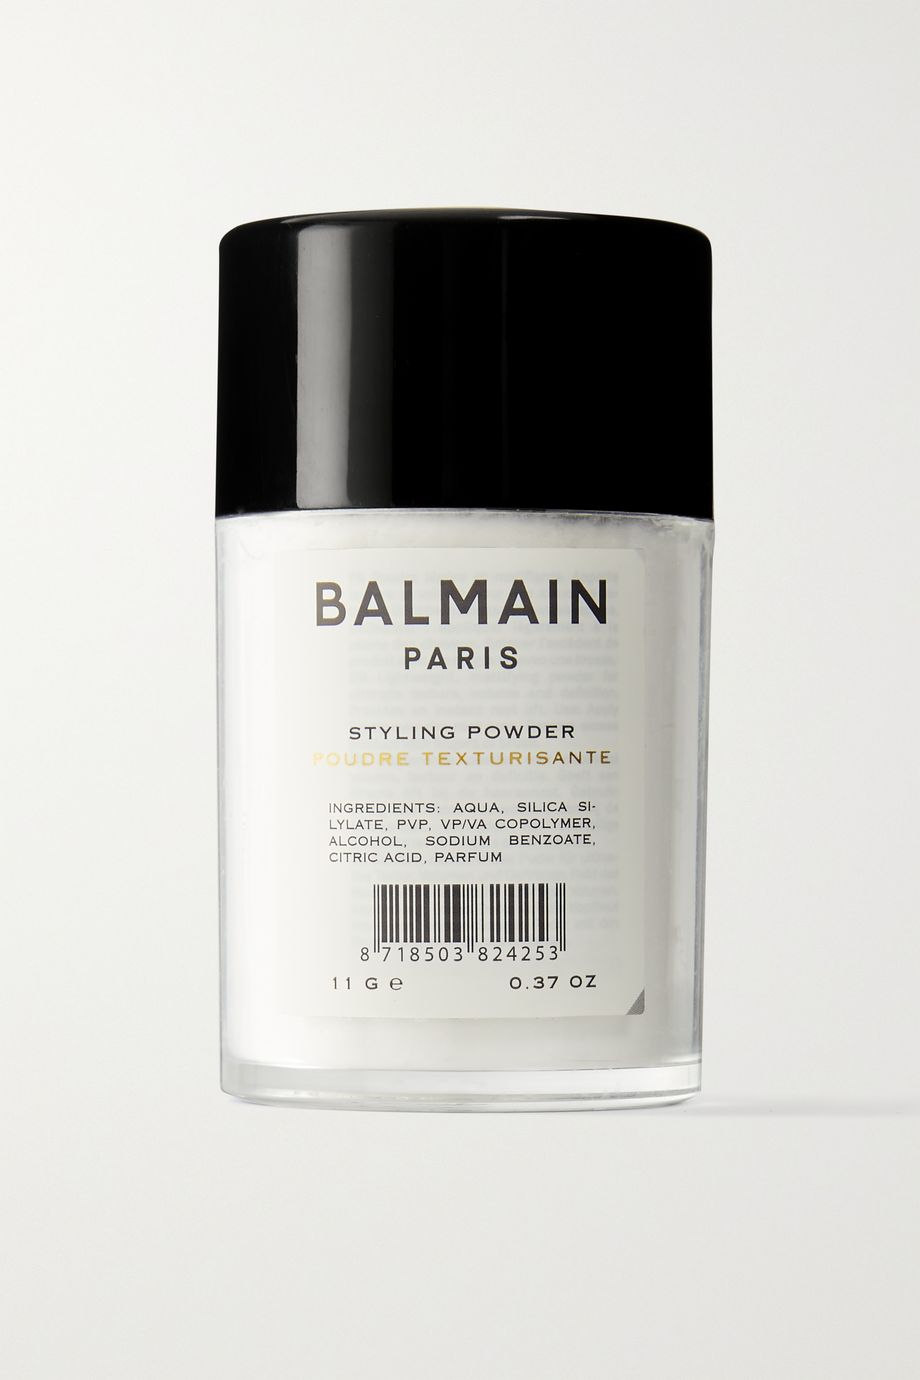 BALMAIN PARIS HAIR COUTURE Styling Powder, 11g